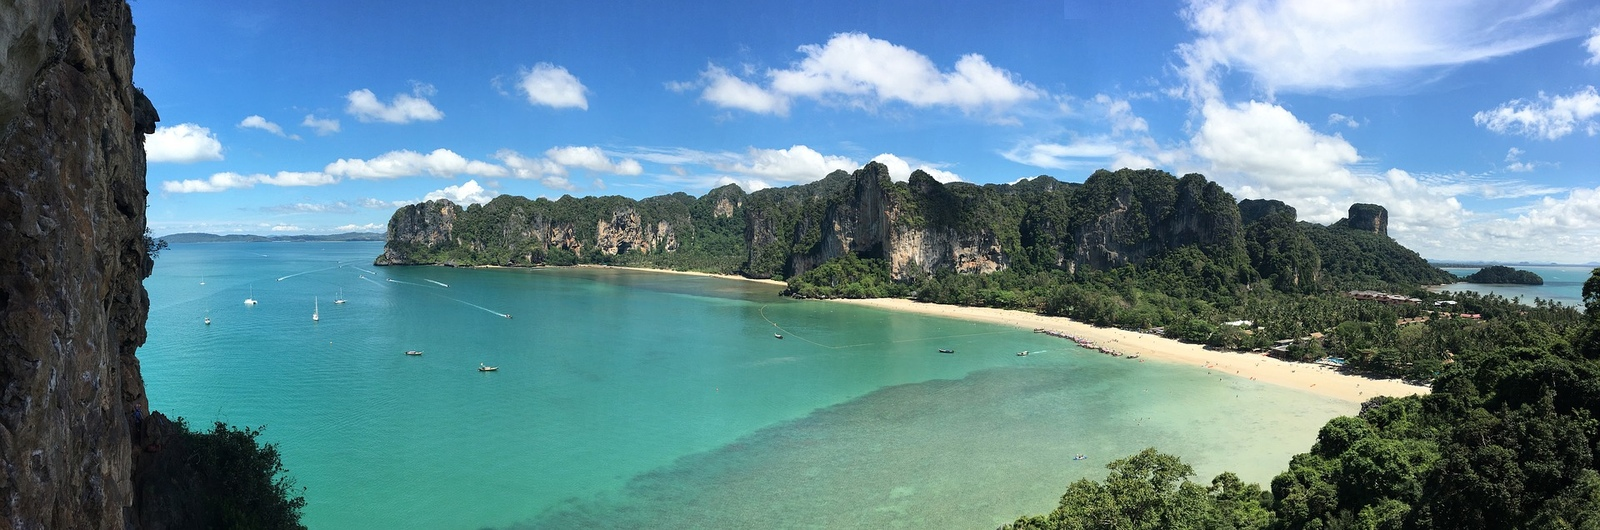 krabi city header